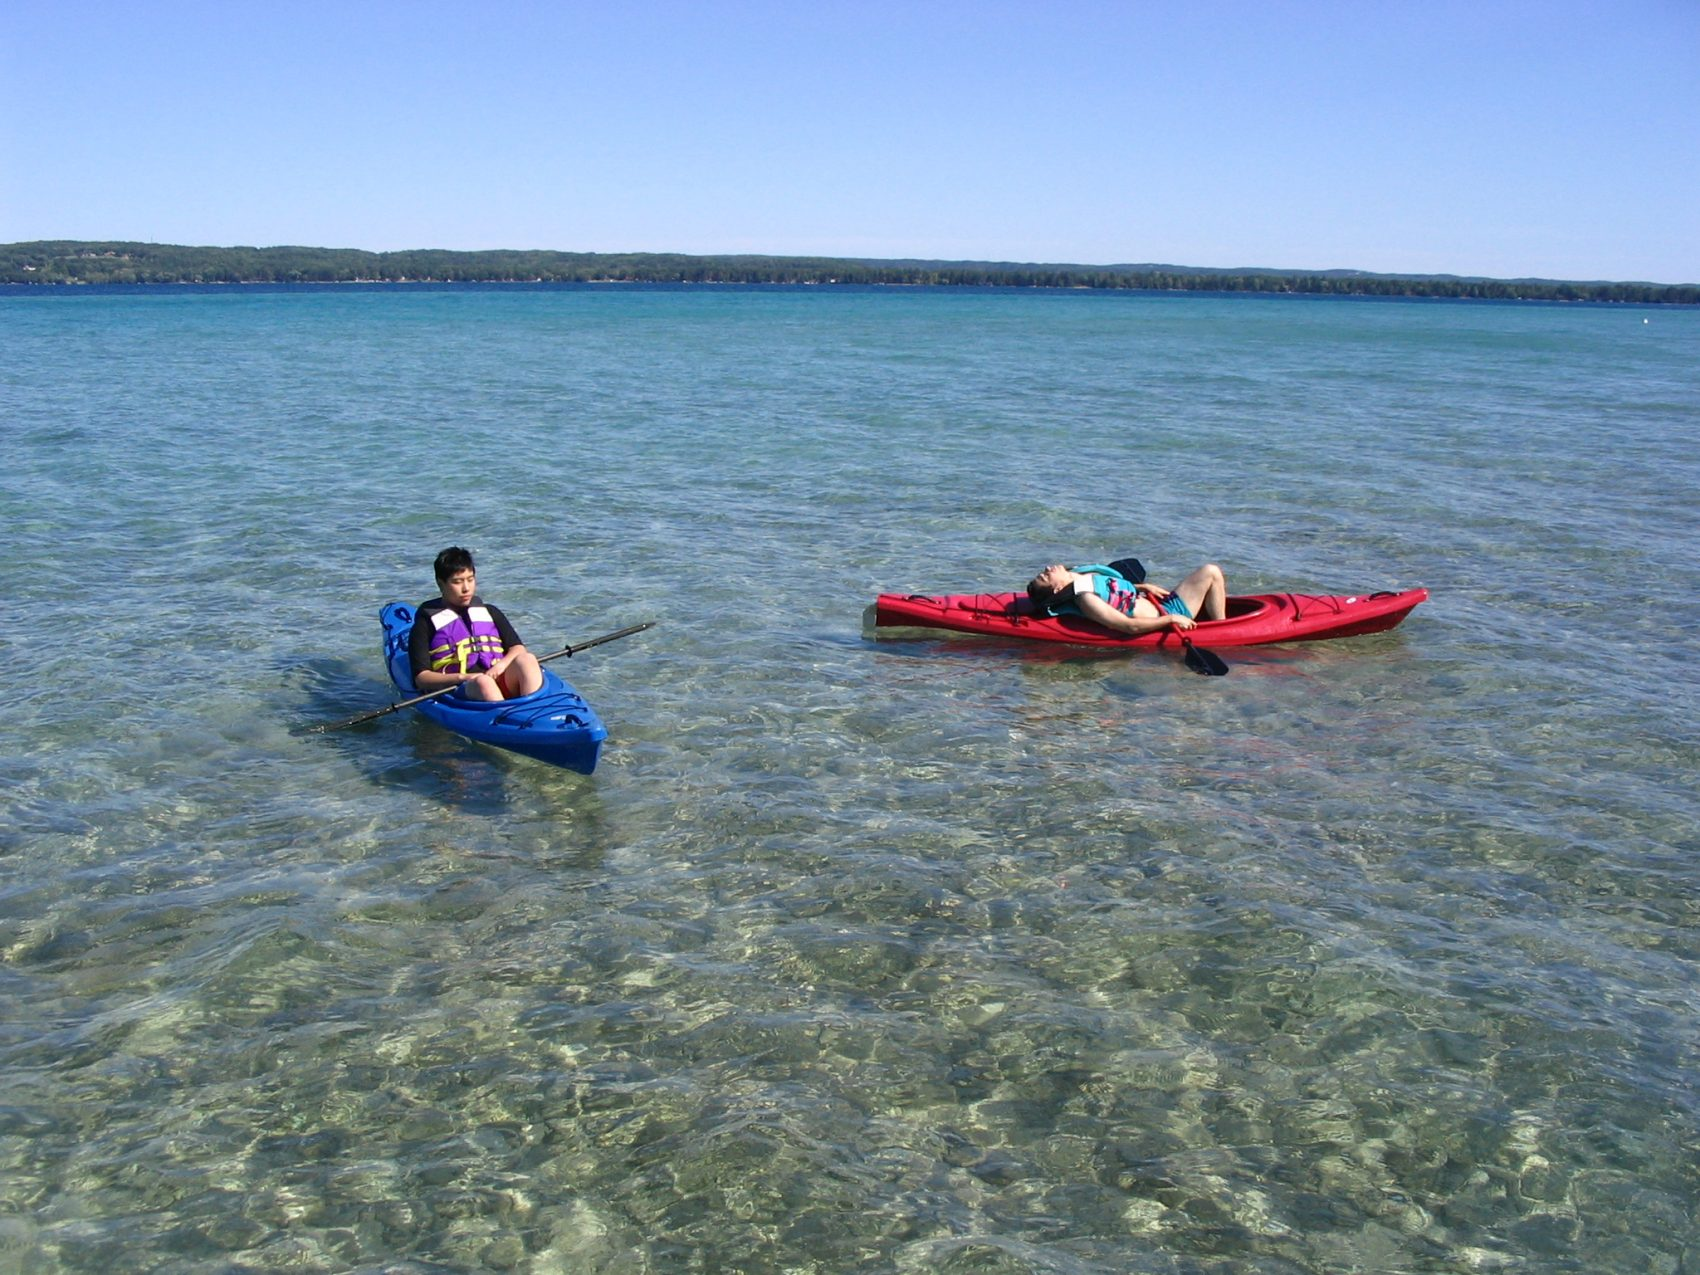 Kayakers on Torch Lake in Michigan. (Andrew Lin via Wikimedia)